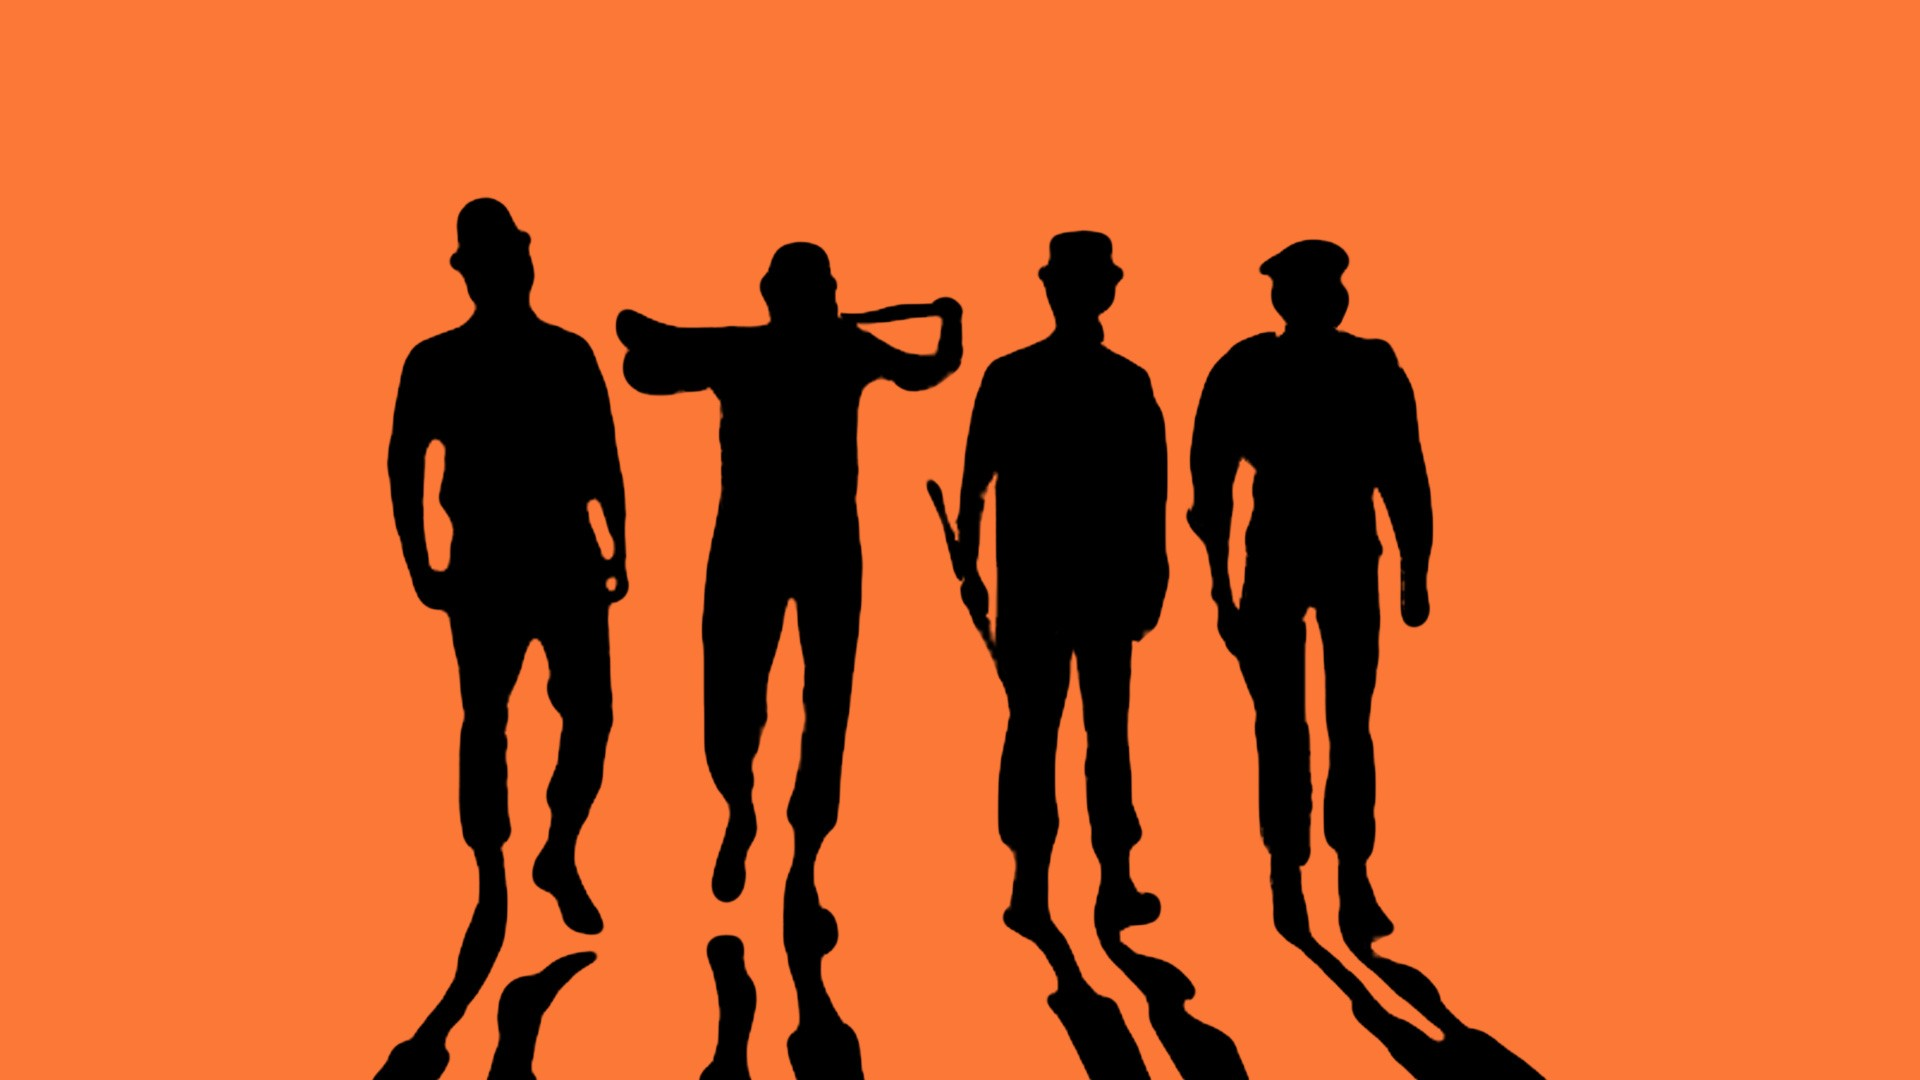 Alpha Coders Wallpaper Abyss Movie A Clockwork Orange 320572 A Clockwork Orange Wallpaper 1920x1080